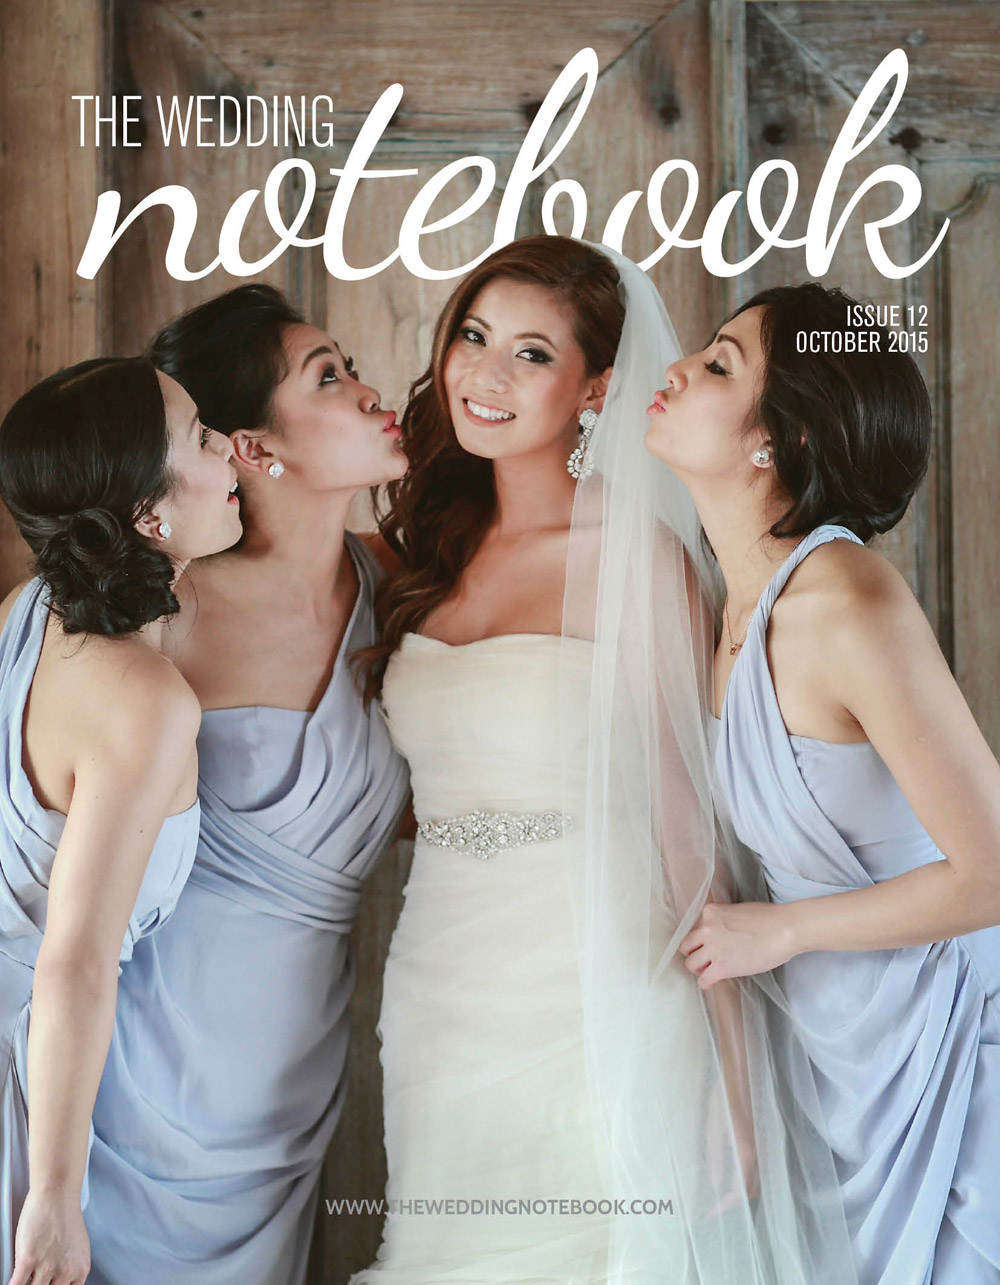 The Wedding Notebook magazine – issue 12. www.thewedingnotebook.com